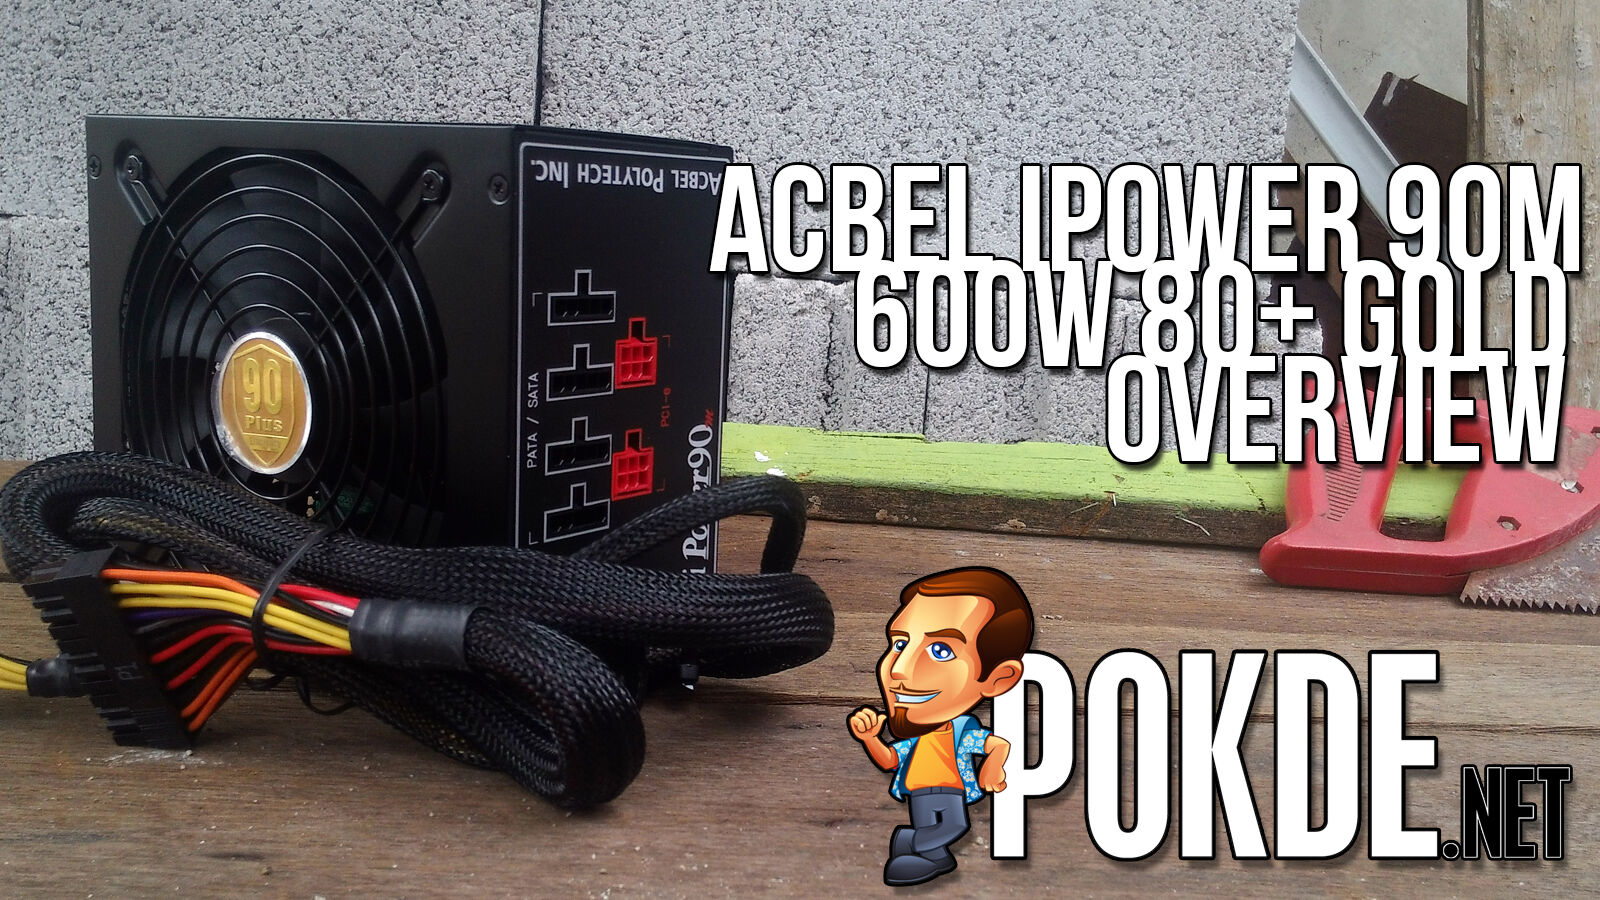 Acbel iPower 90m 600W 80+ Gold overview 22